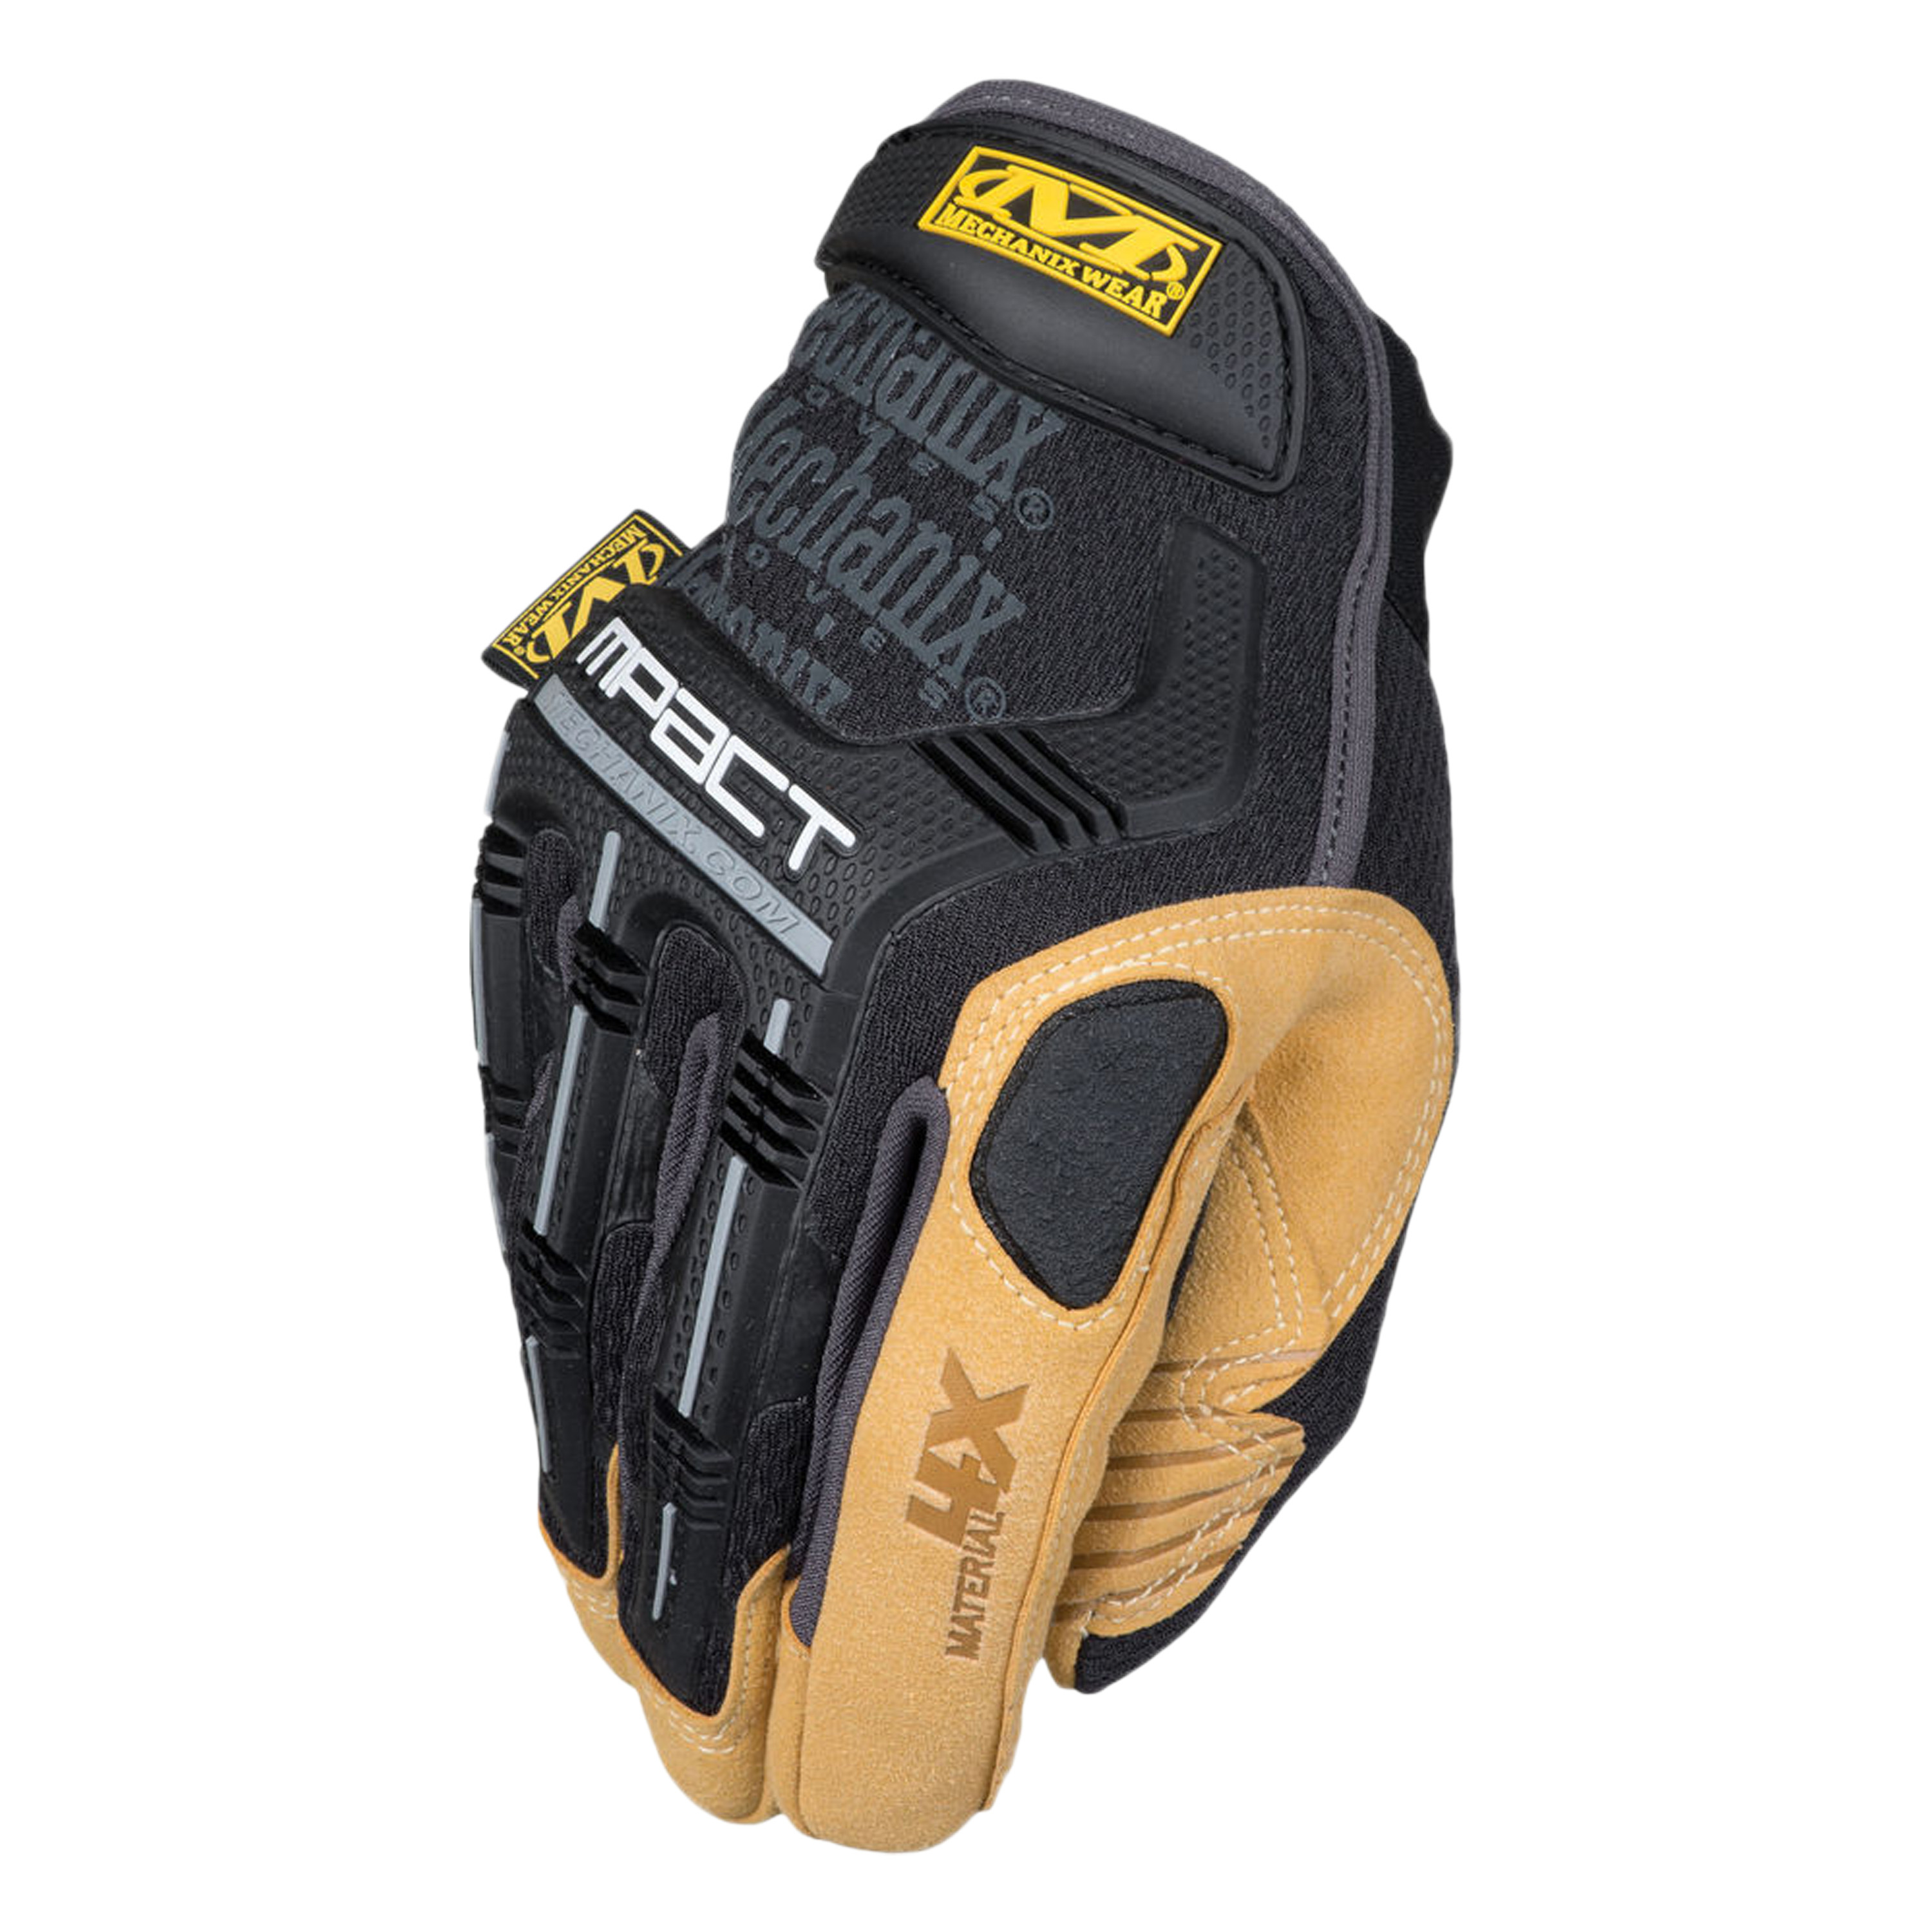 Mechanix M-Pact® 4X Gloves black